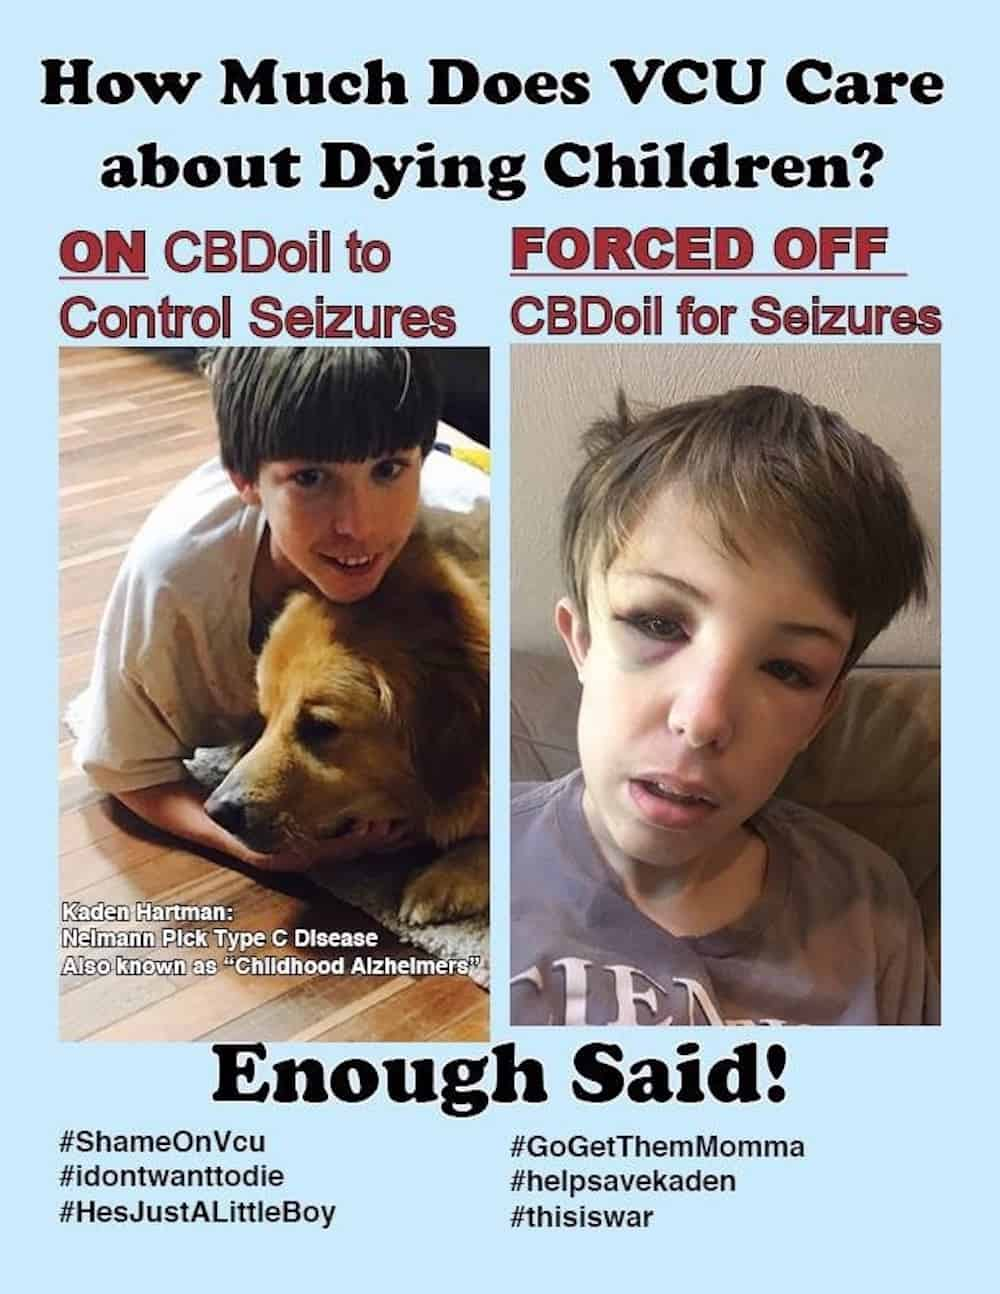 13-Year-Old Denied Life-Saving Treatment Because He Used CBD Oil